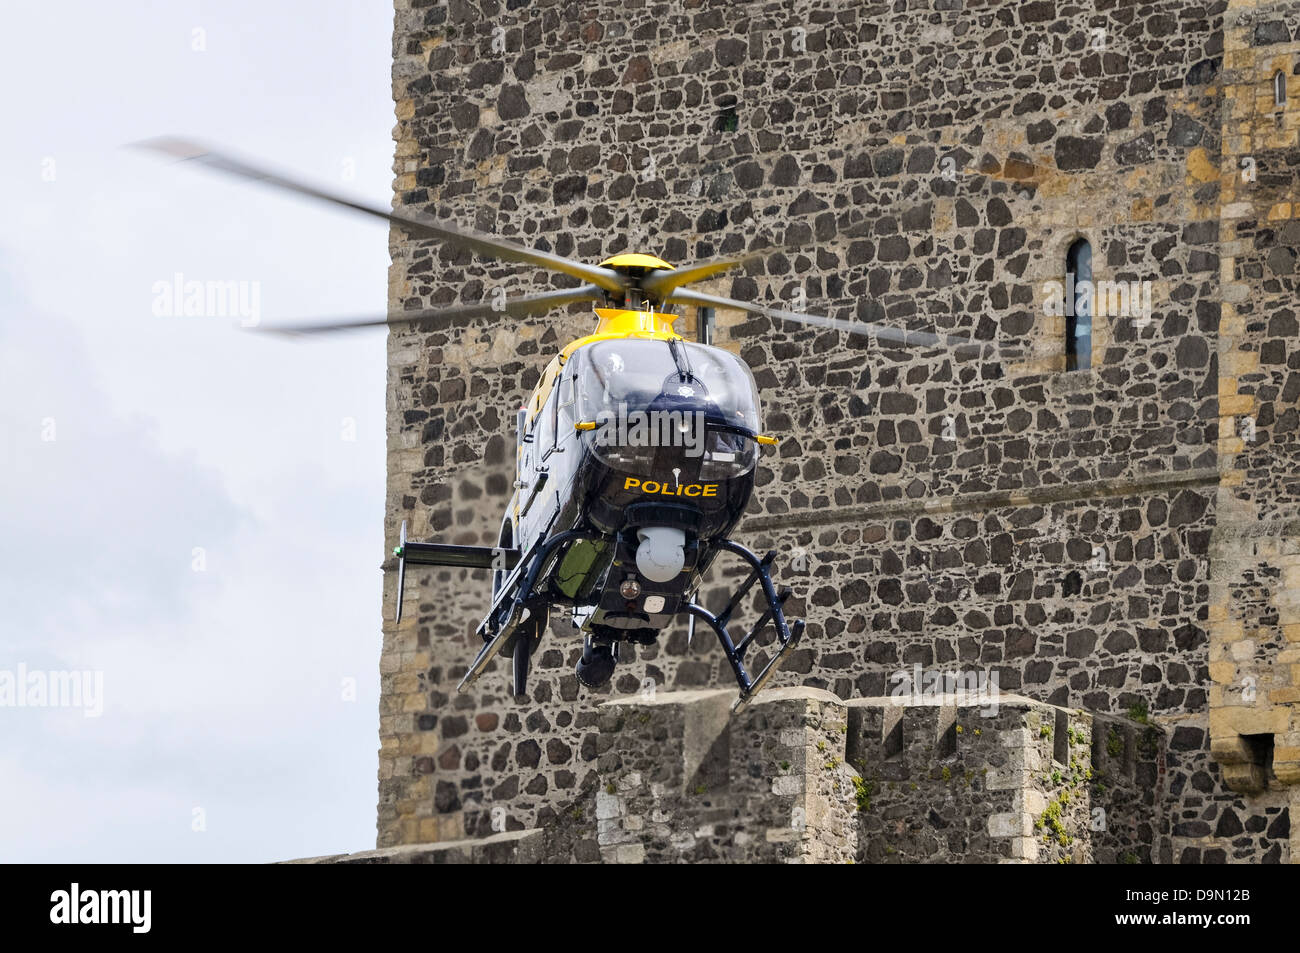 PSNI police helicopter G-PSNI (Eurocopter EC135) comes in to land beside Carrickfergus Castle - Stock Image